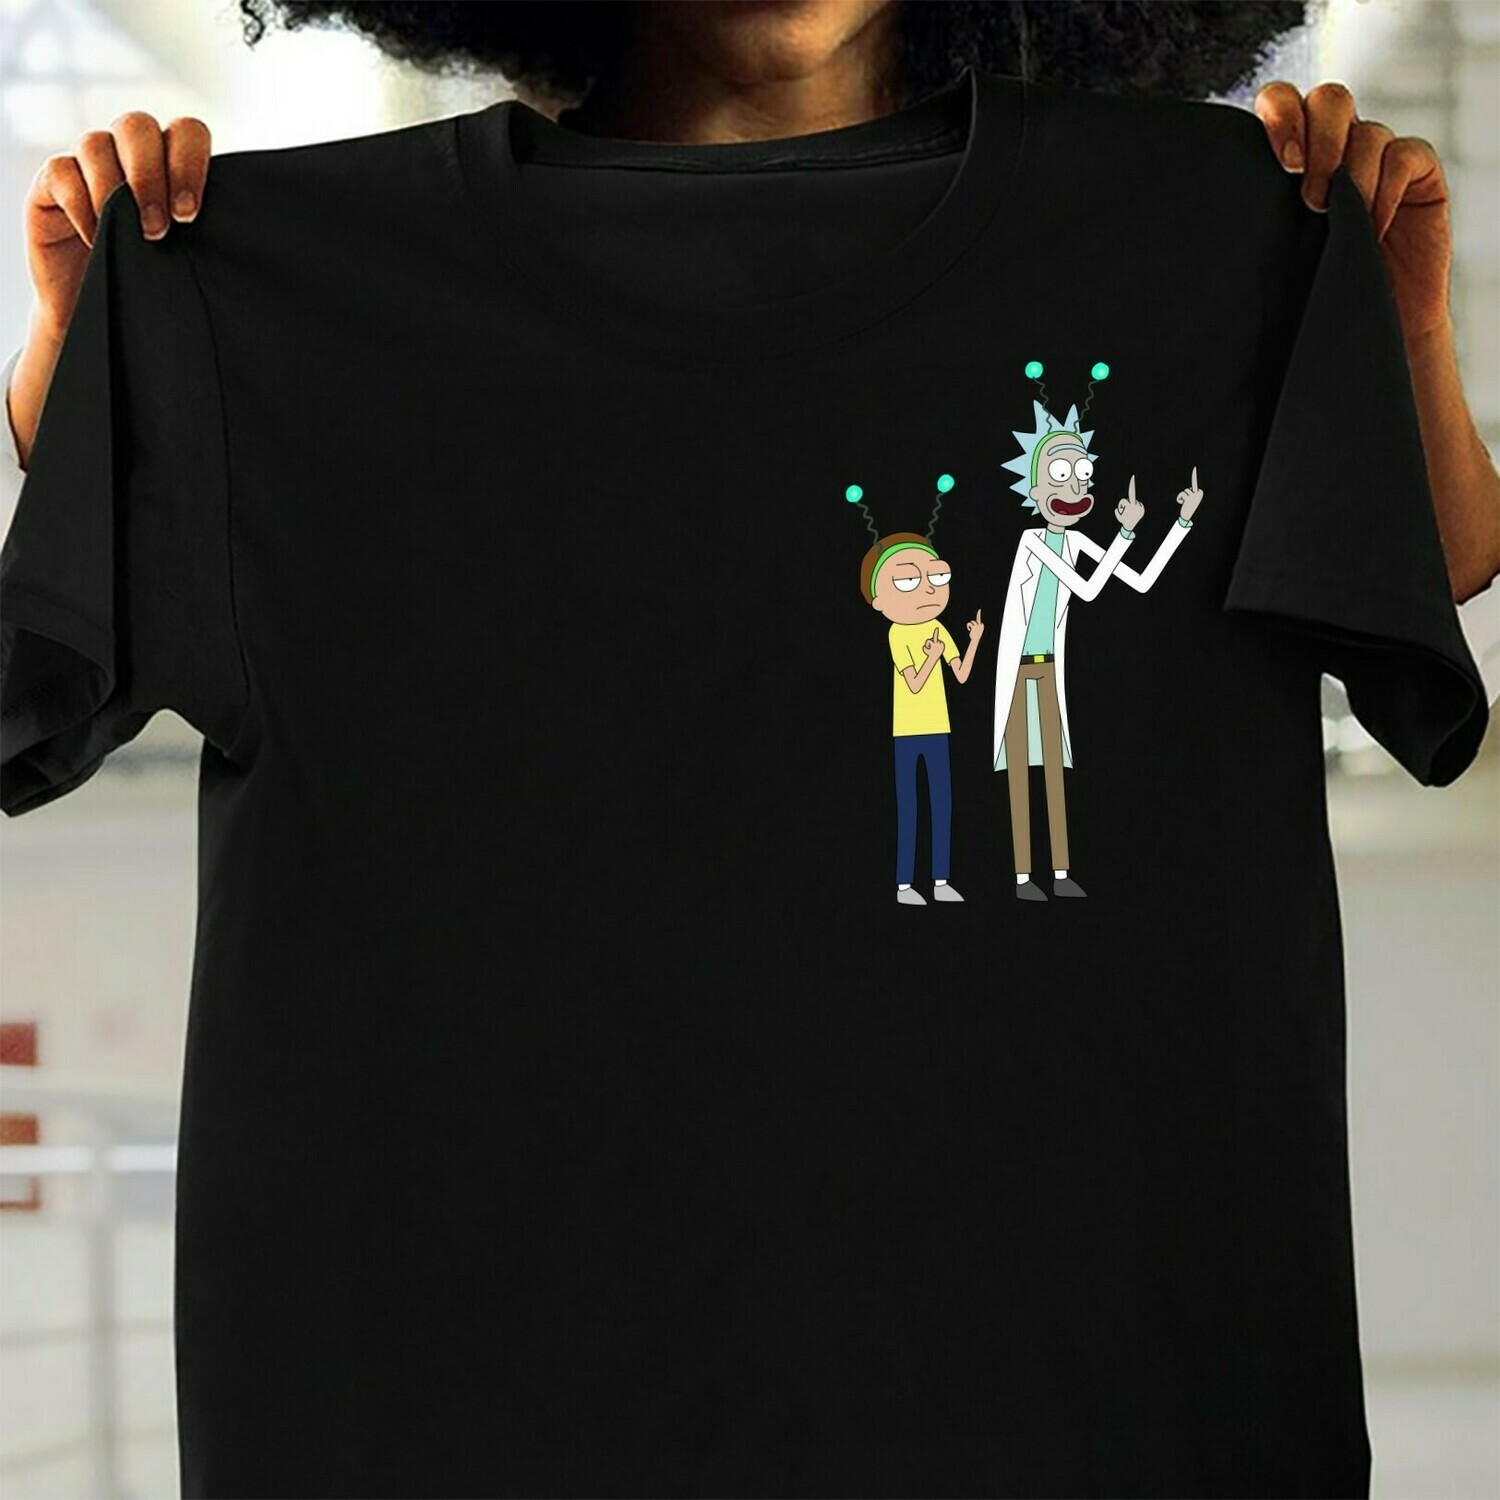 Rick And Morty American adult animated science fiction sitcom movie Flip The Bird Rick And Morty Boobs for Retro  T-Shirt Hoodie Sweatshirt Sweater Tee Kids Youth Gifts Jolly Family Gifts